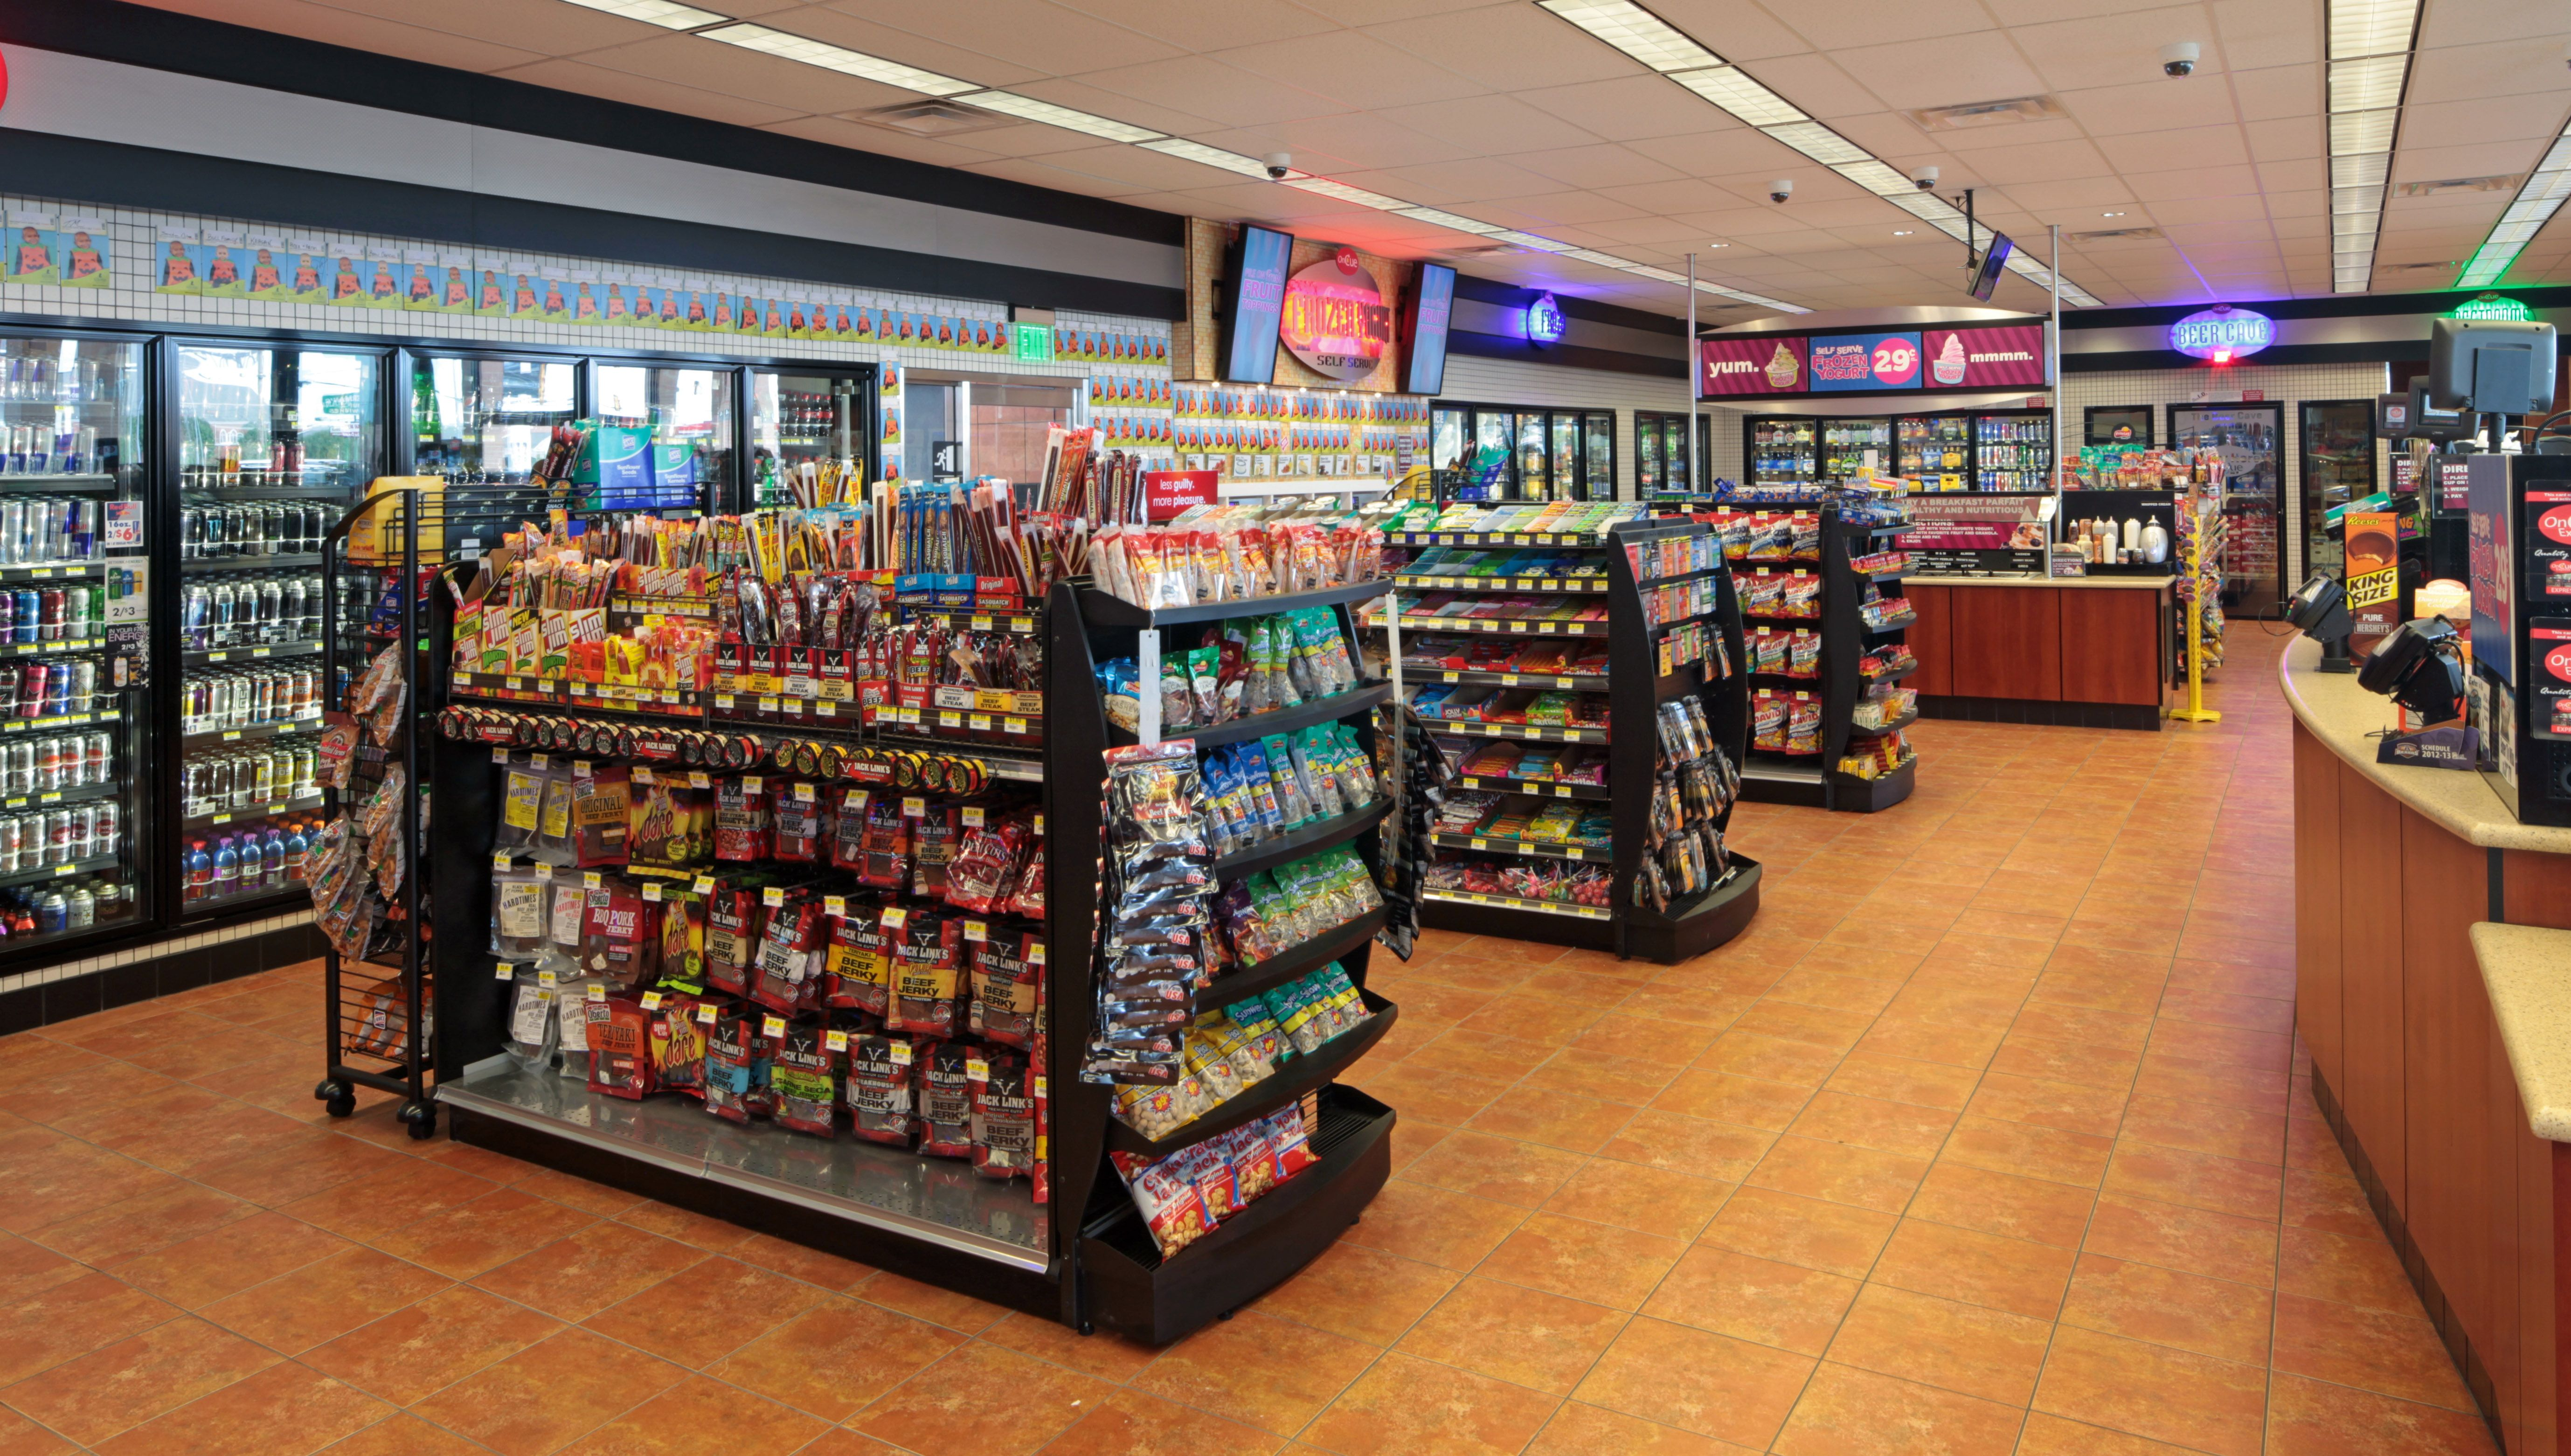 Hfa Designs Convenience Store Interiors Electrical And Plumbing